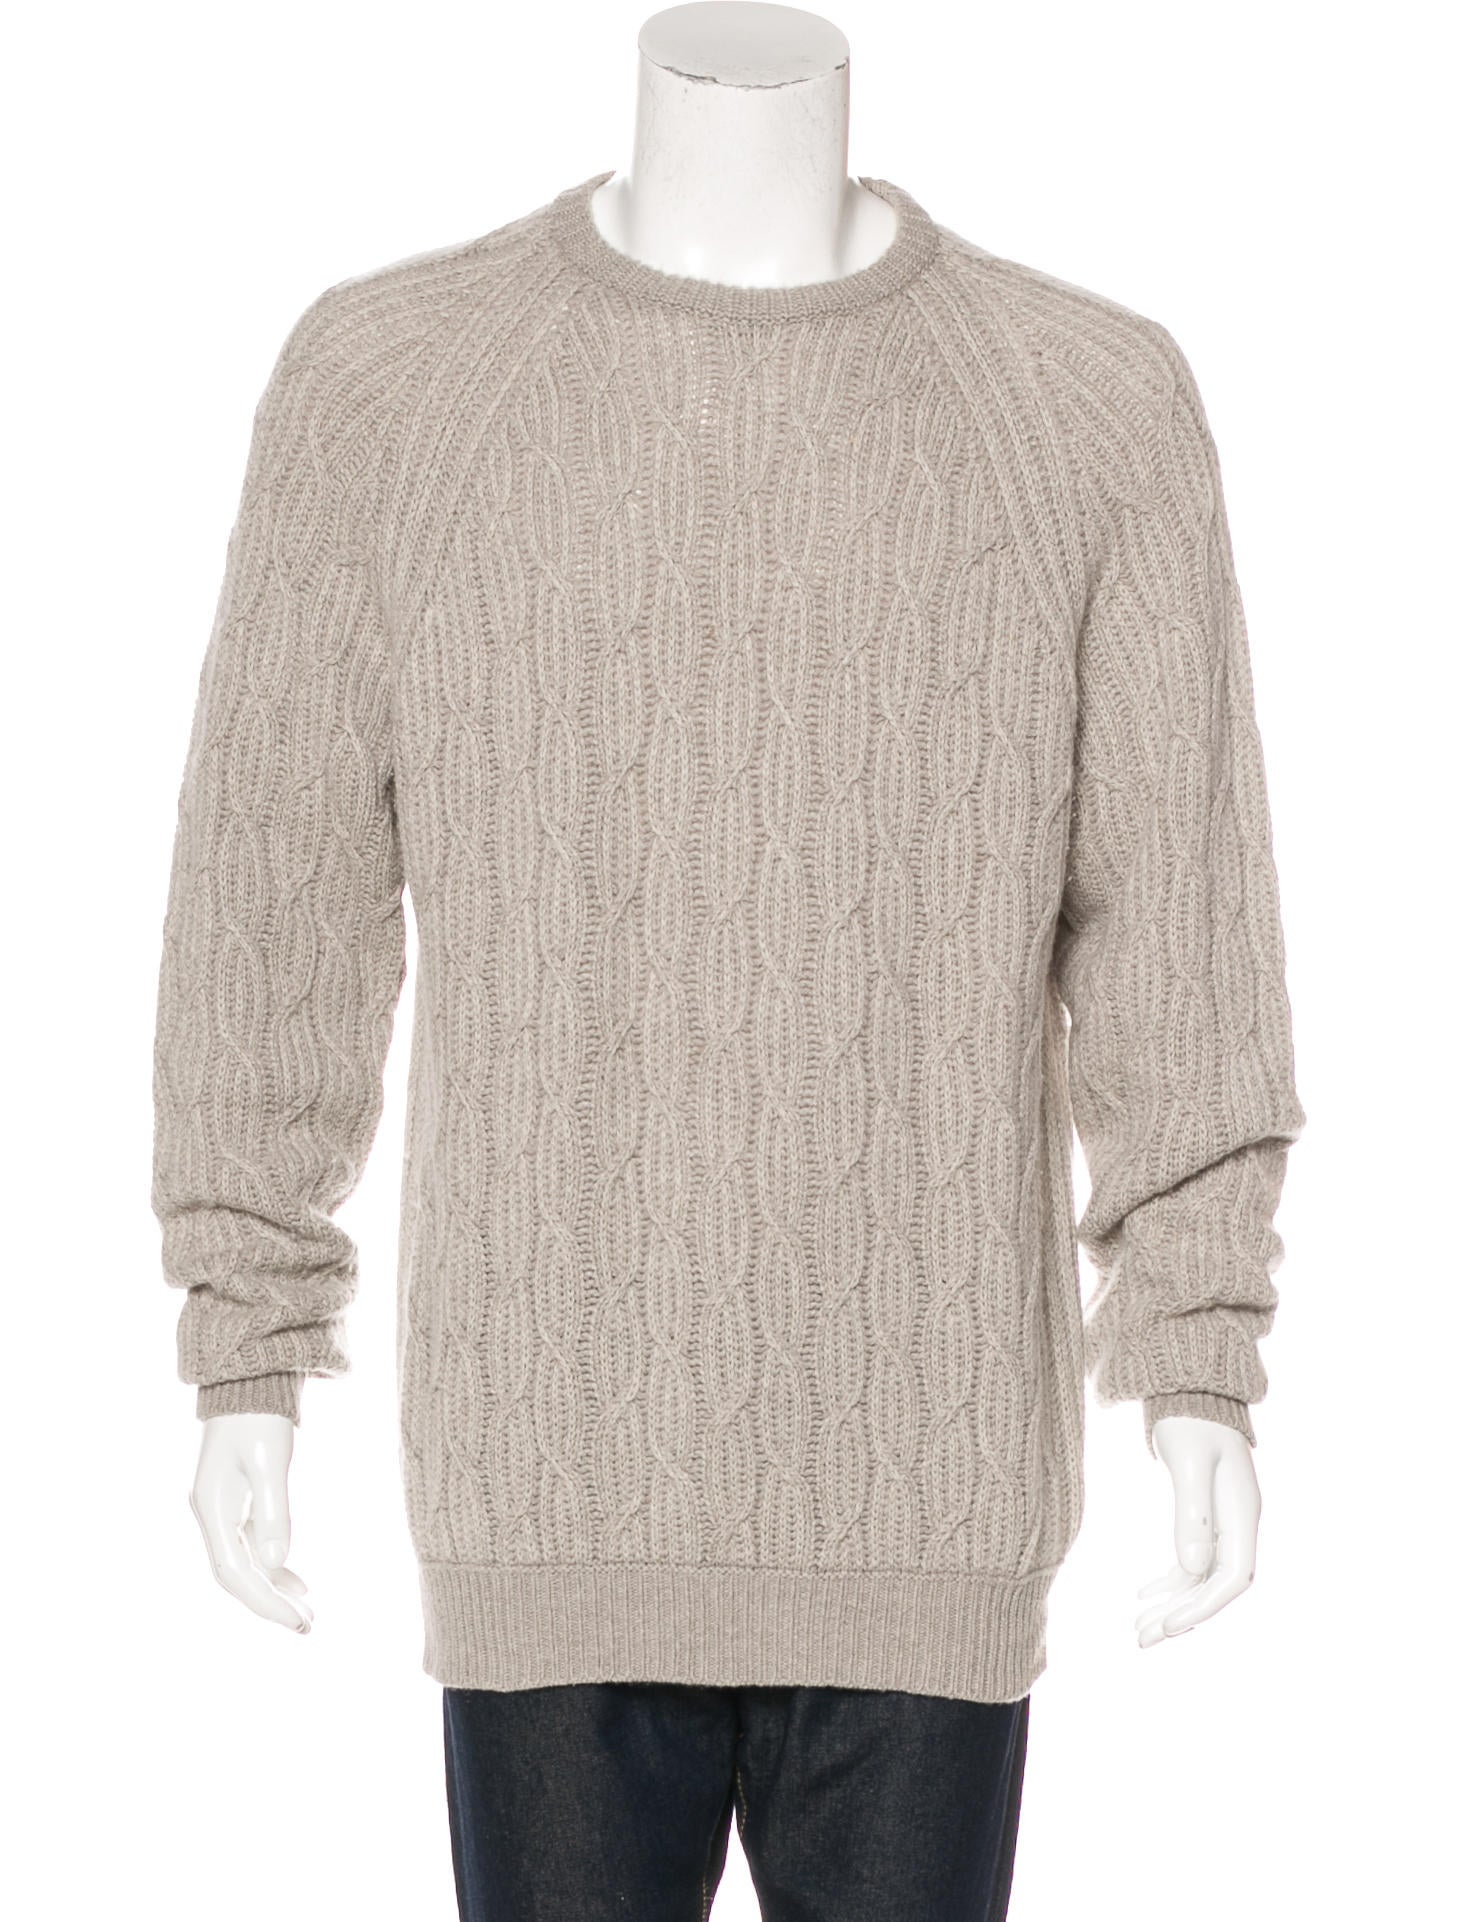 Loro Piana Baby Cashmere Cable Knit Sweater - Clothing - LOR38777 ...